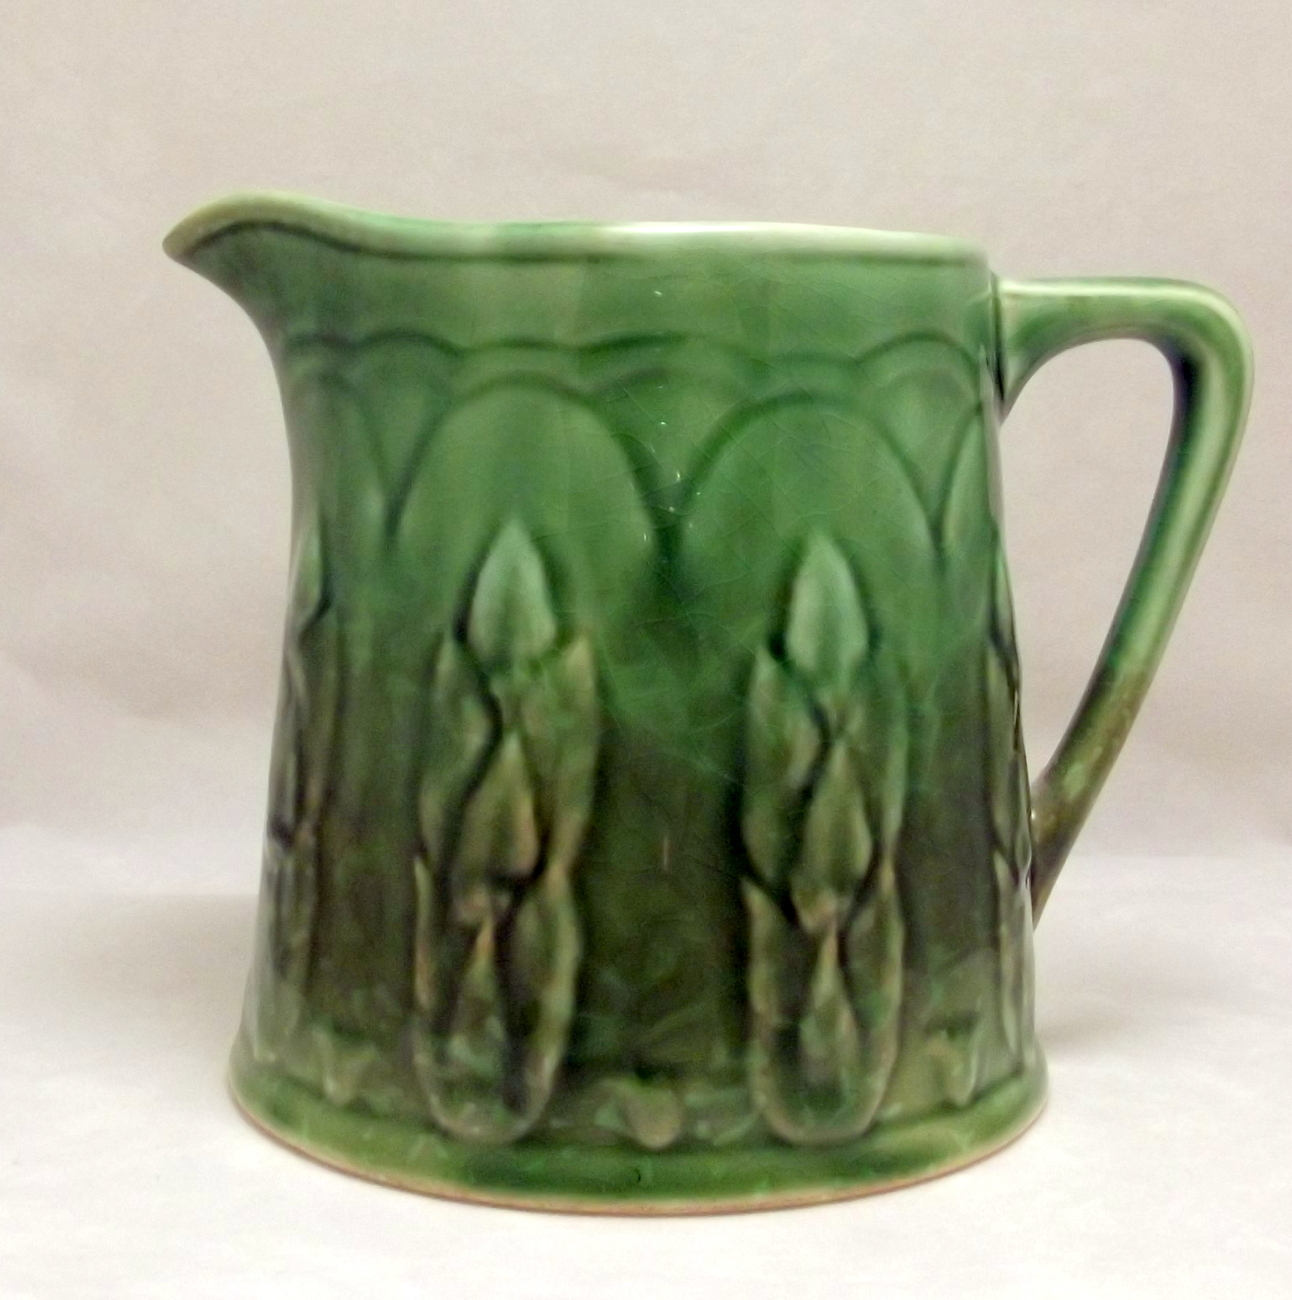 Arts and crafts mission era green ceramic pitcher 1920s for Arts and crafts pottery makers